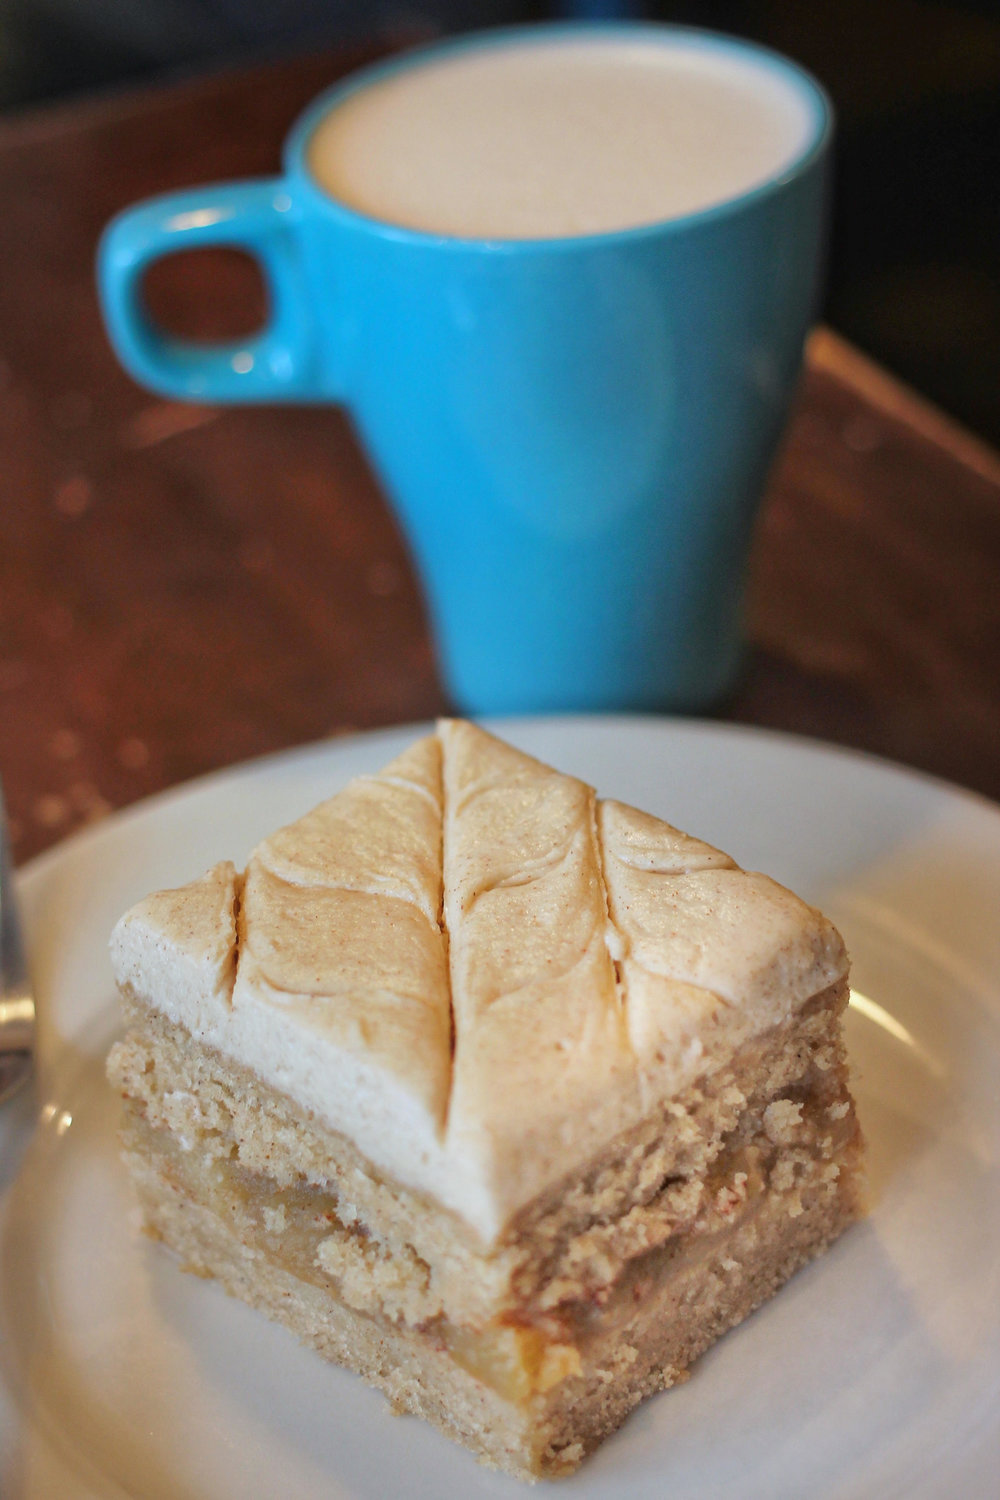 Apple Cider Doughnut Cake and Housemade Chai from Darling Coffee